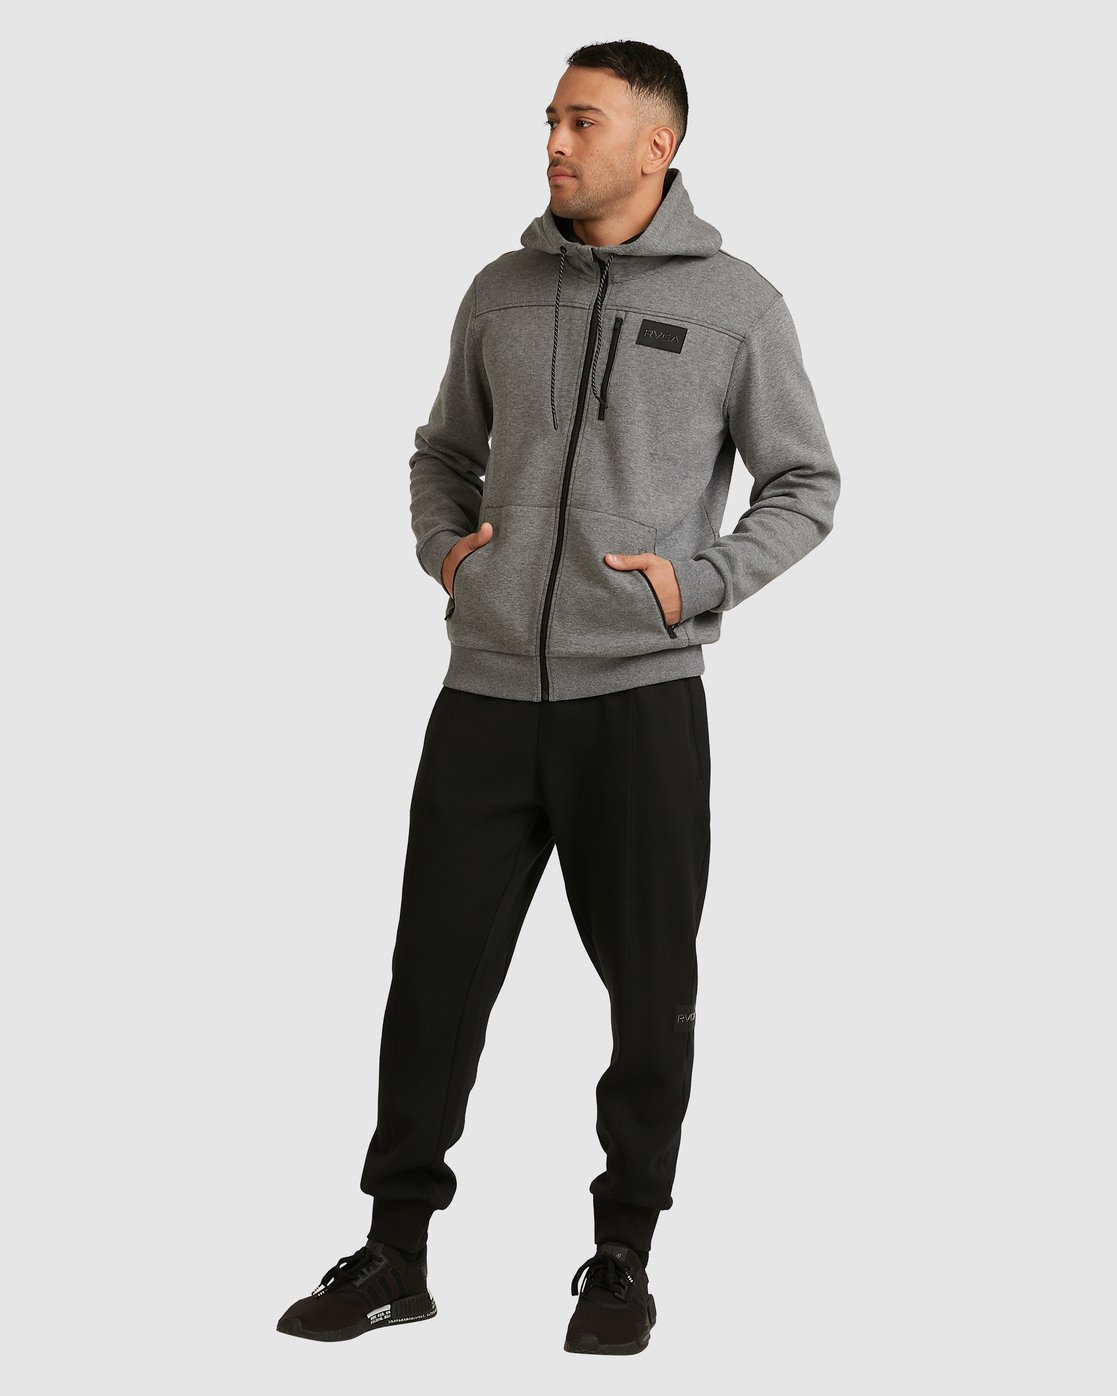 7 SPORT TECH SWEATPANT Black R305271 RVCA